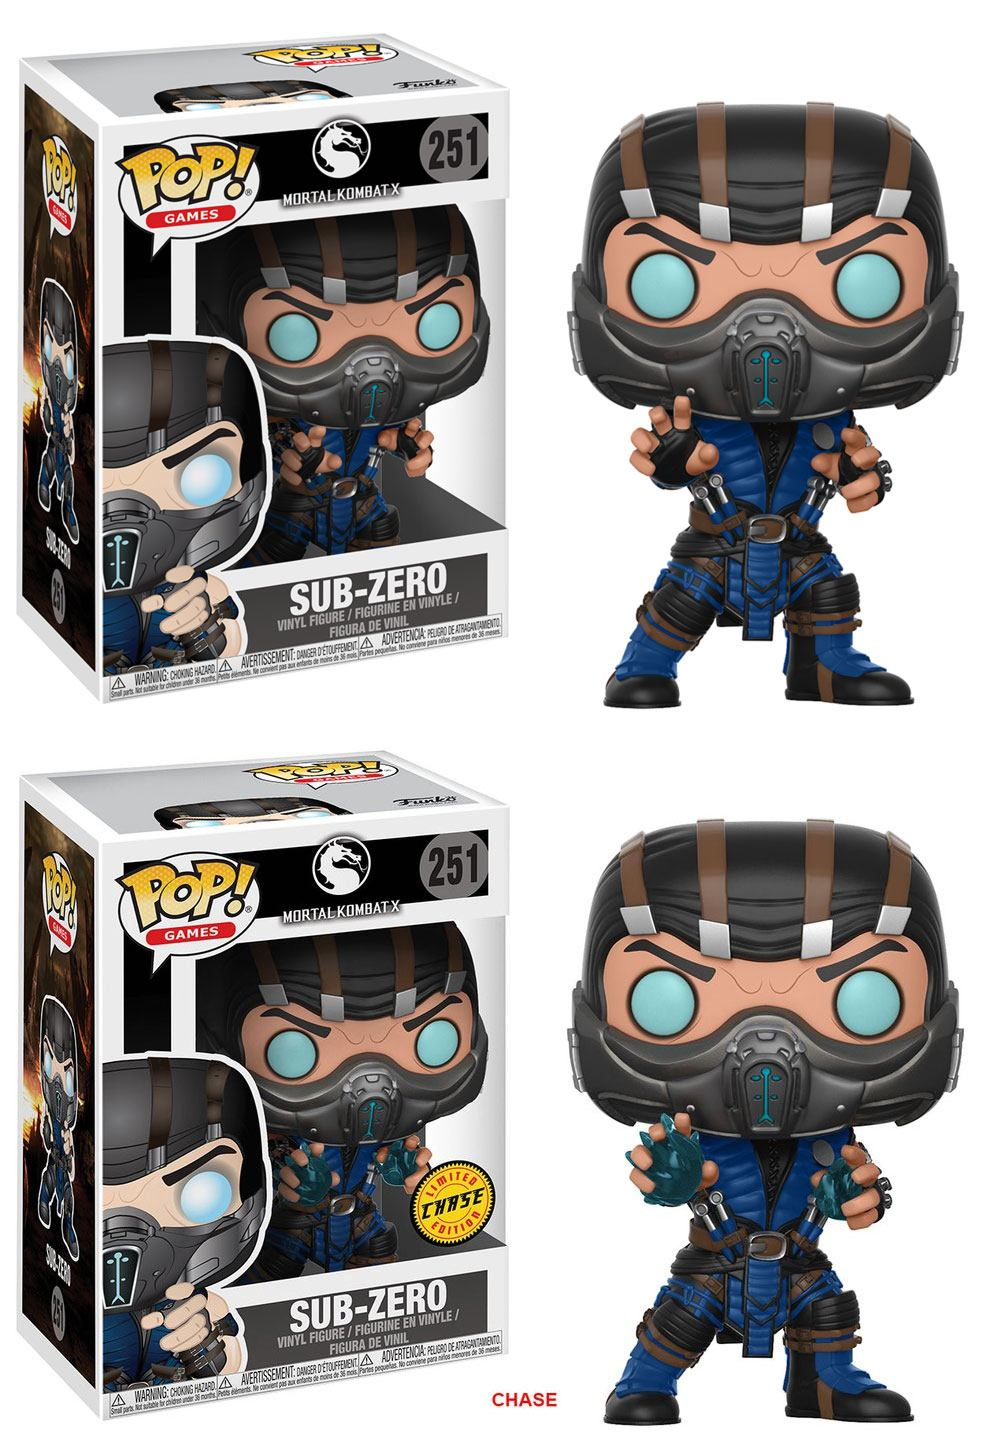 Mortal Kombat POP! Games Figures Subzero 9 cm Assortment (6)